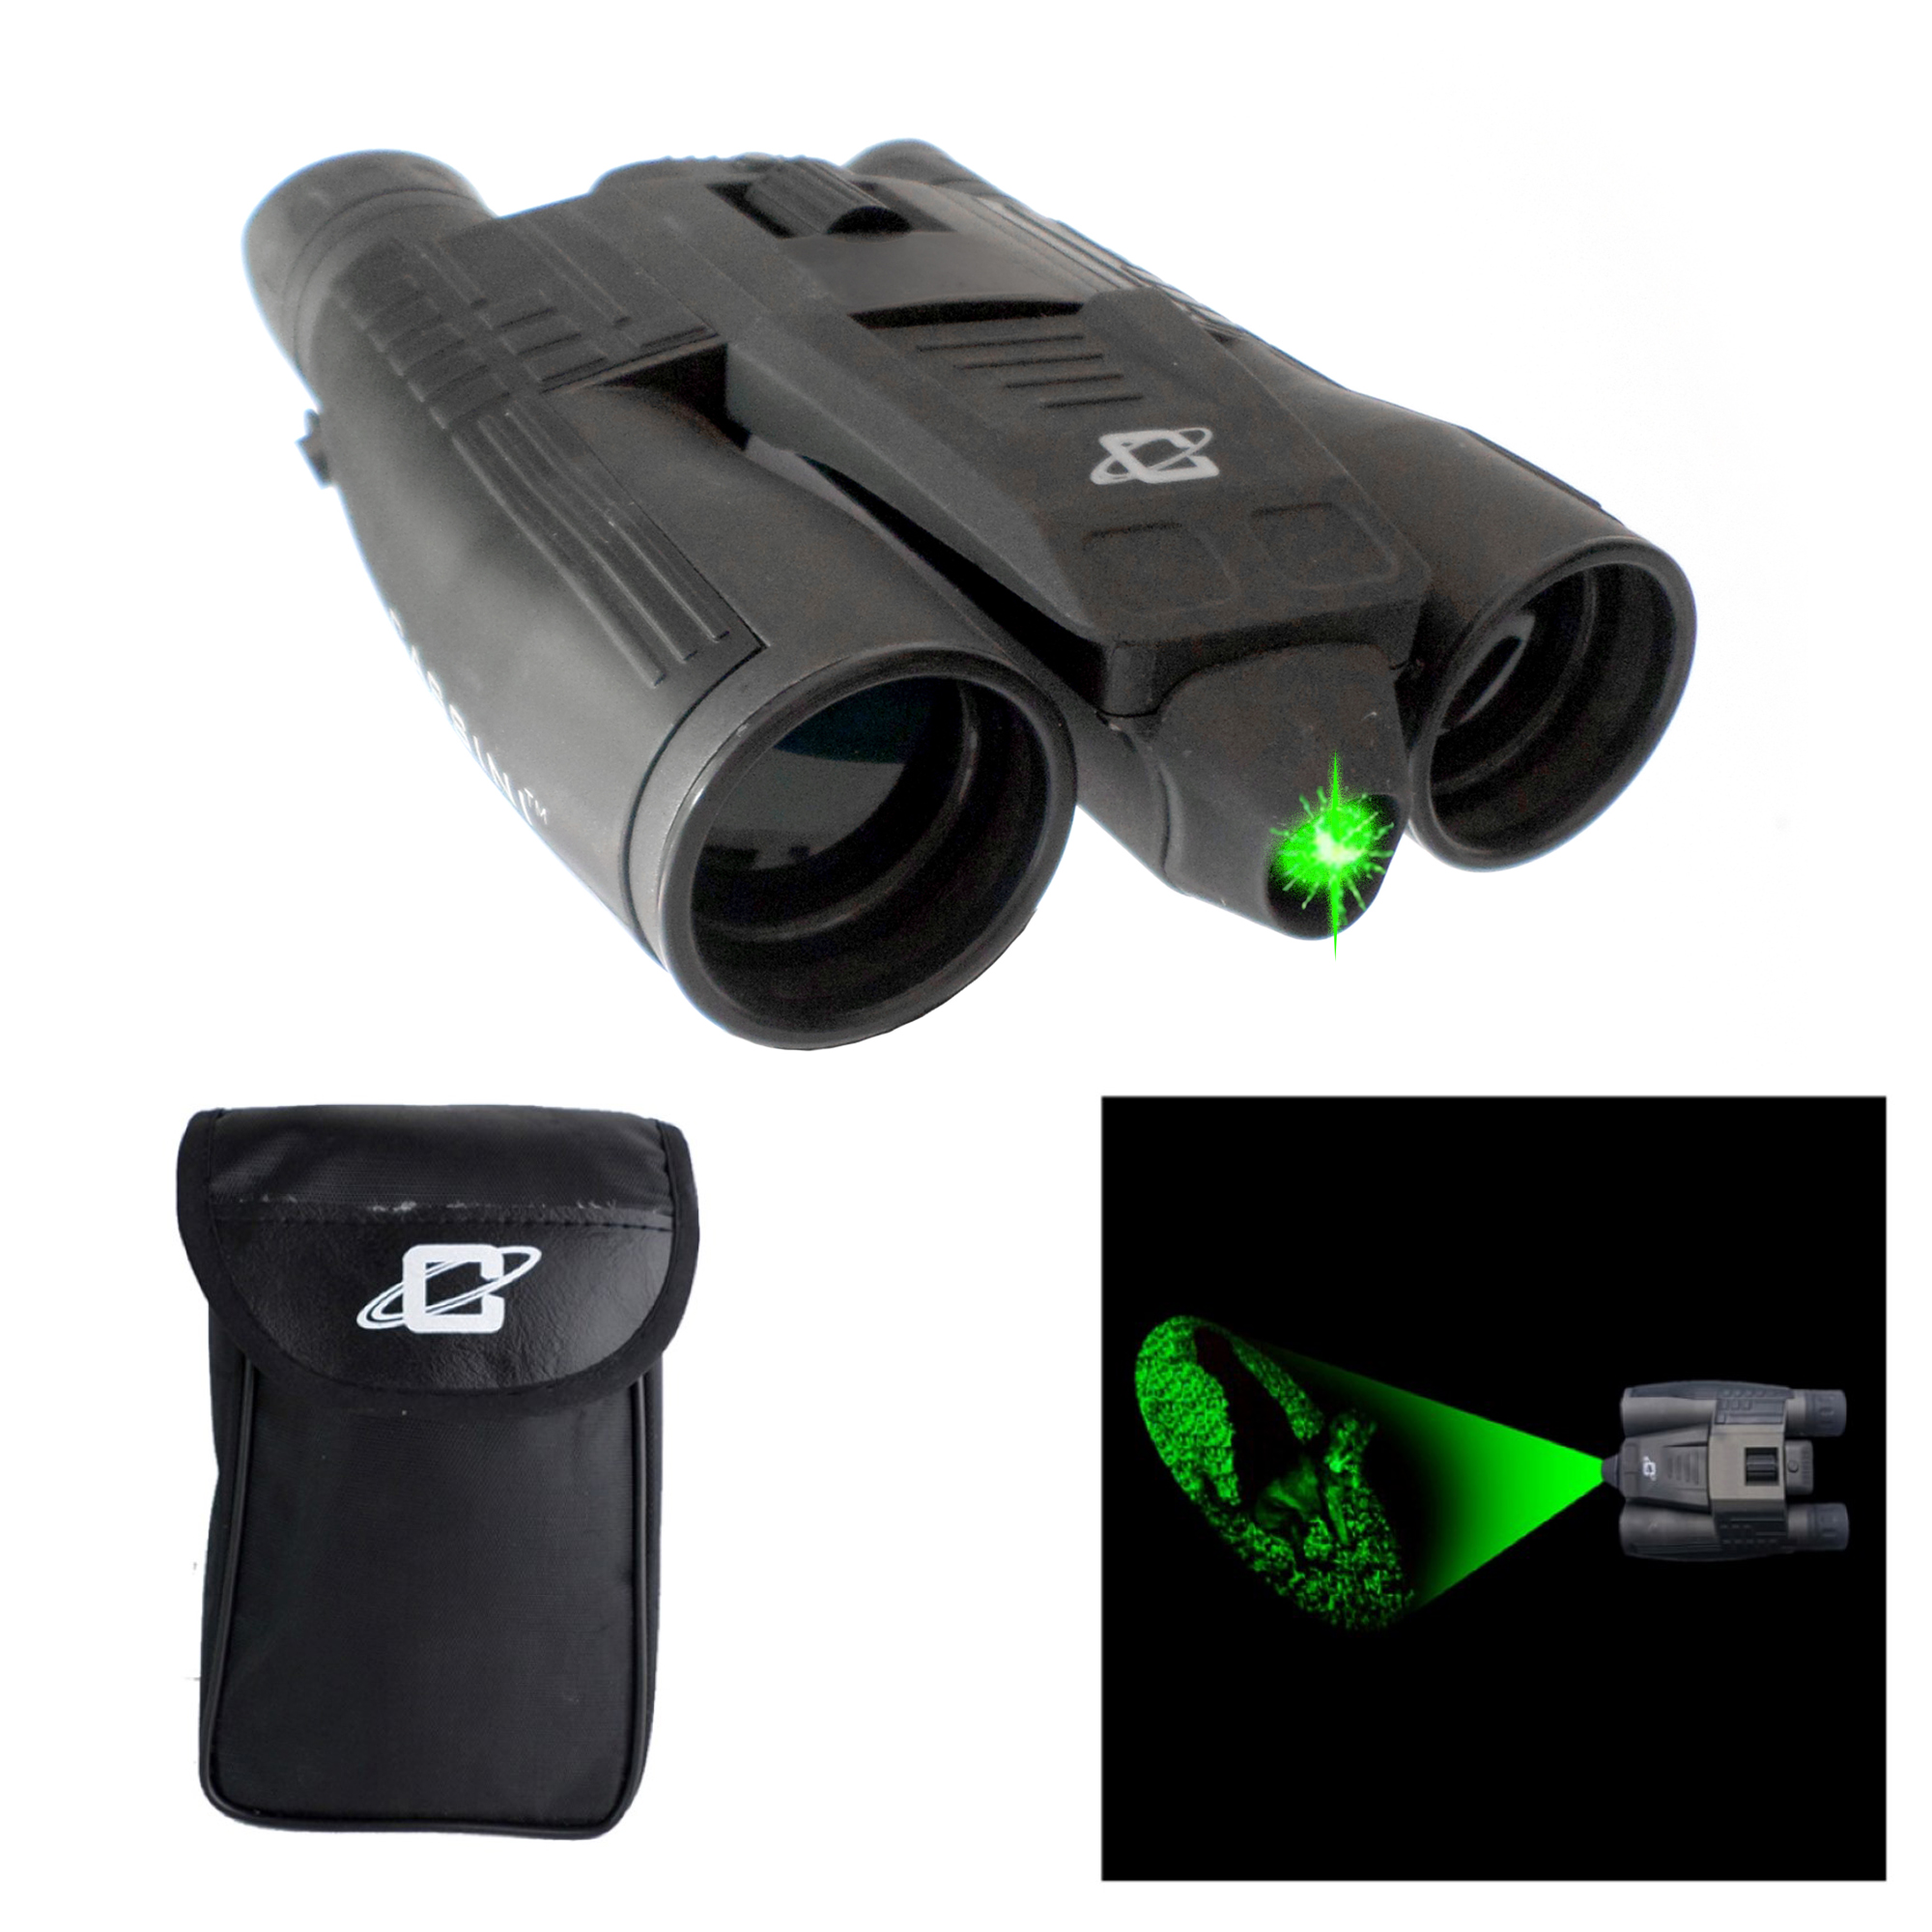 Cassini 12 x 32mm Binocular with K9 Green Laser beam for Day and Night viewing. Tripod Port and Case